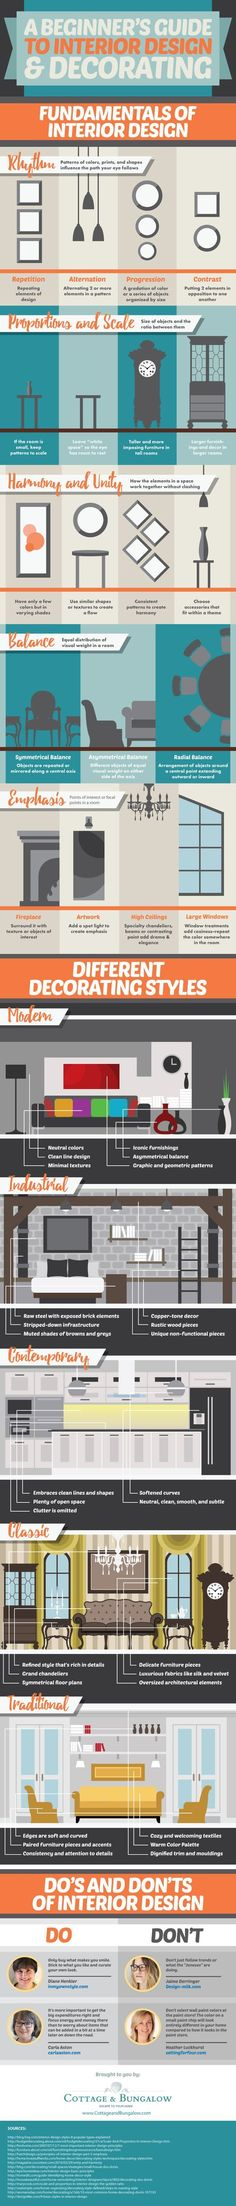 rdeco_design-infographic